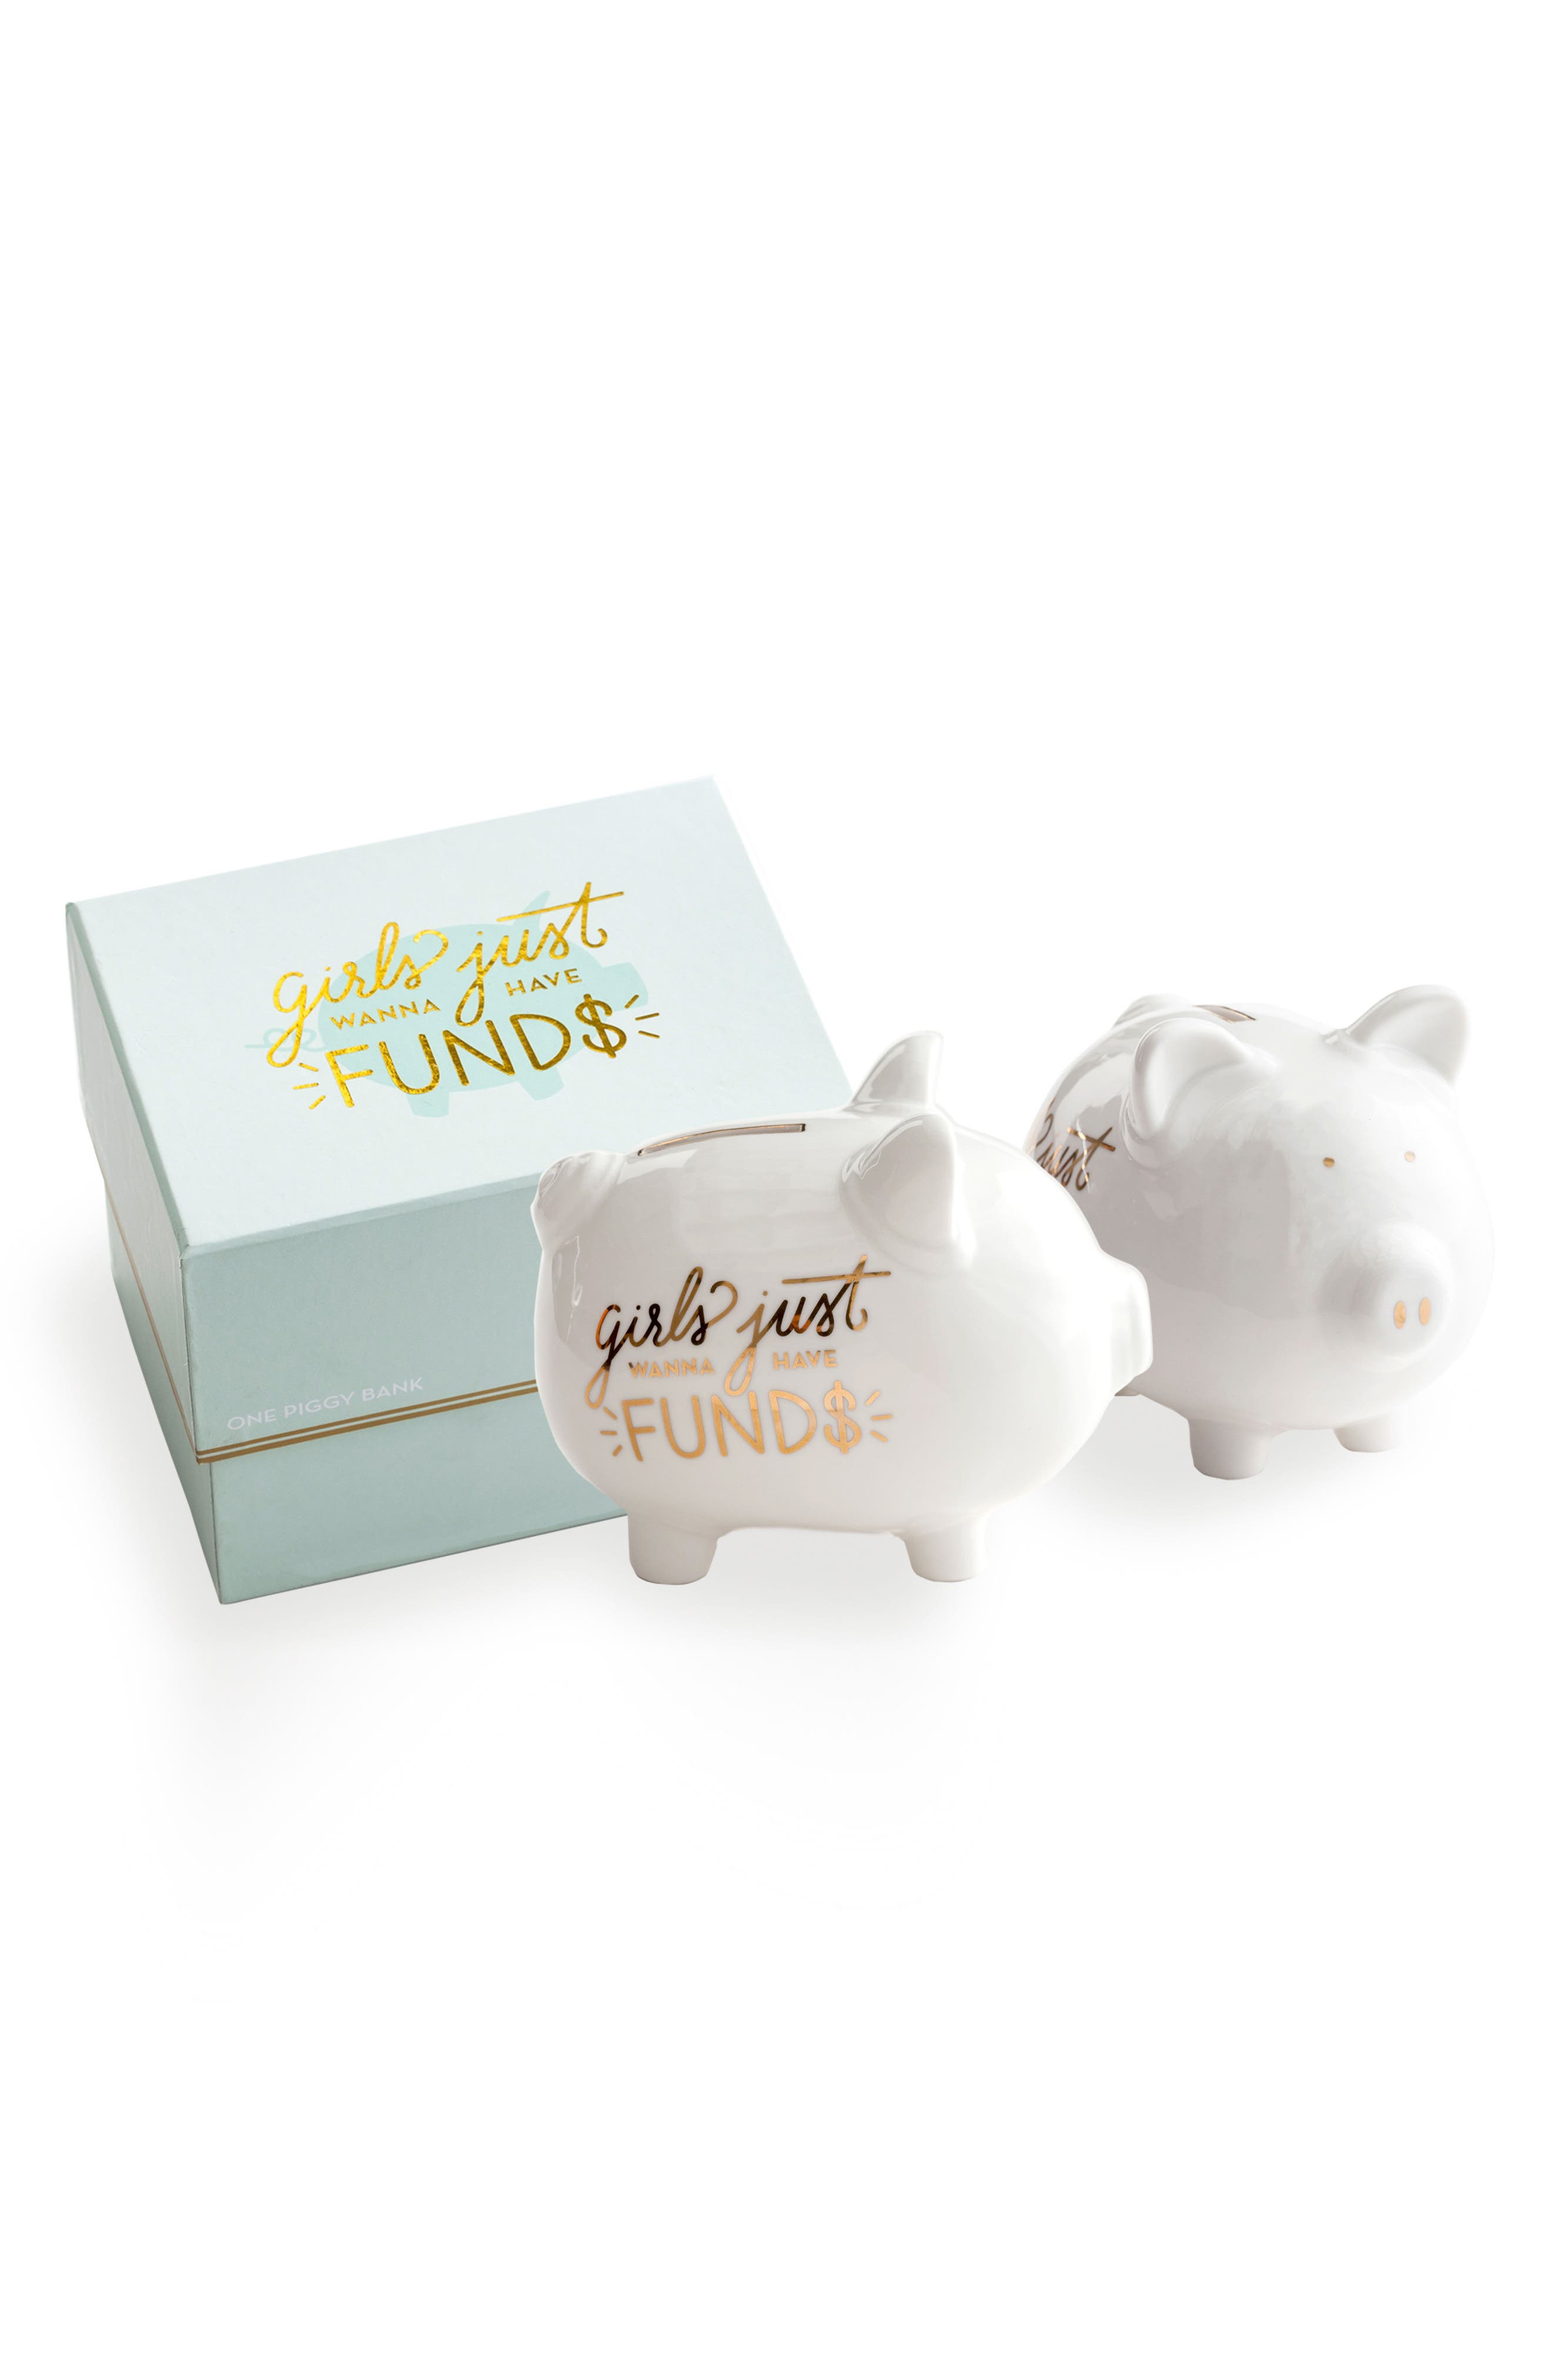 Girls Just Wanna Have Funds Porcelain Piggy Bank,                             Main thumbnail 1, color,                             White